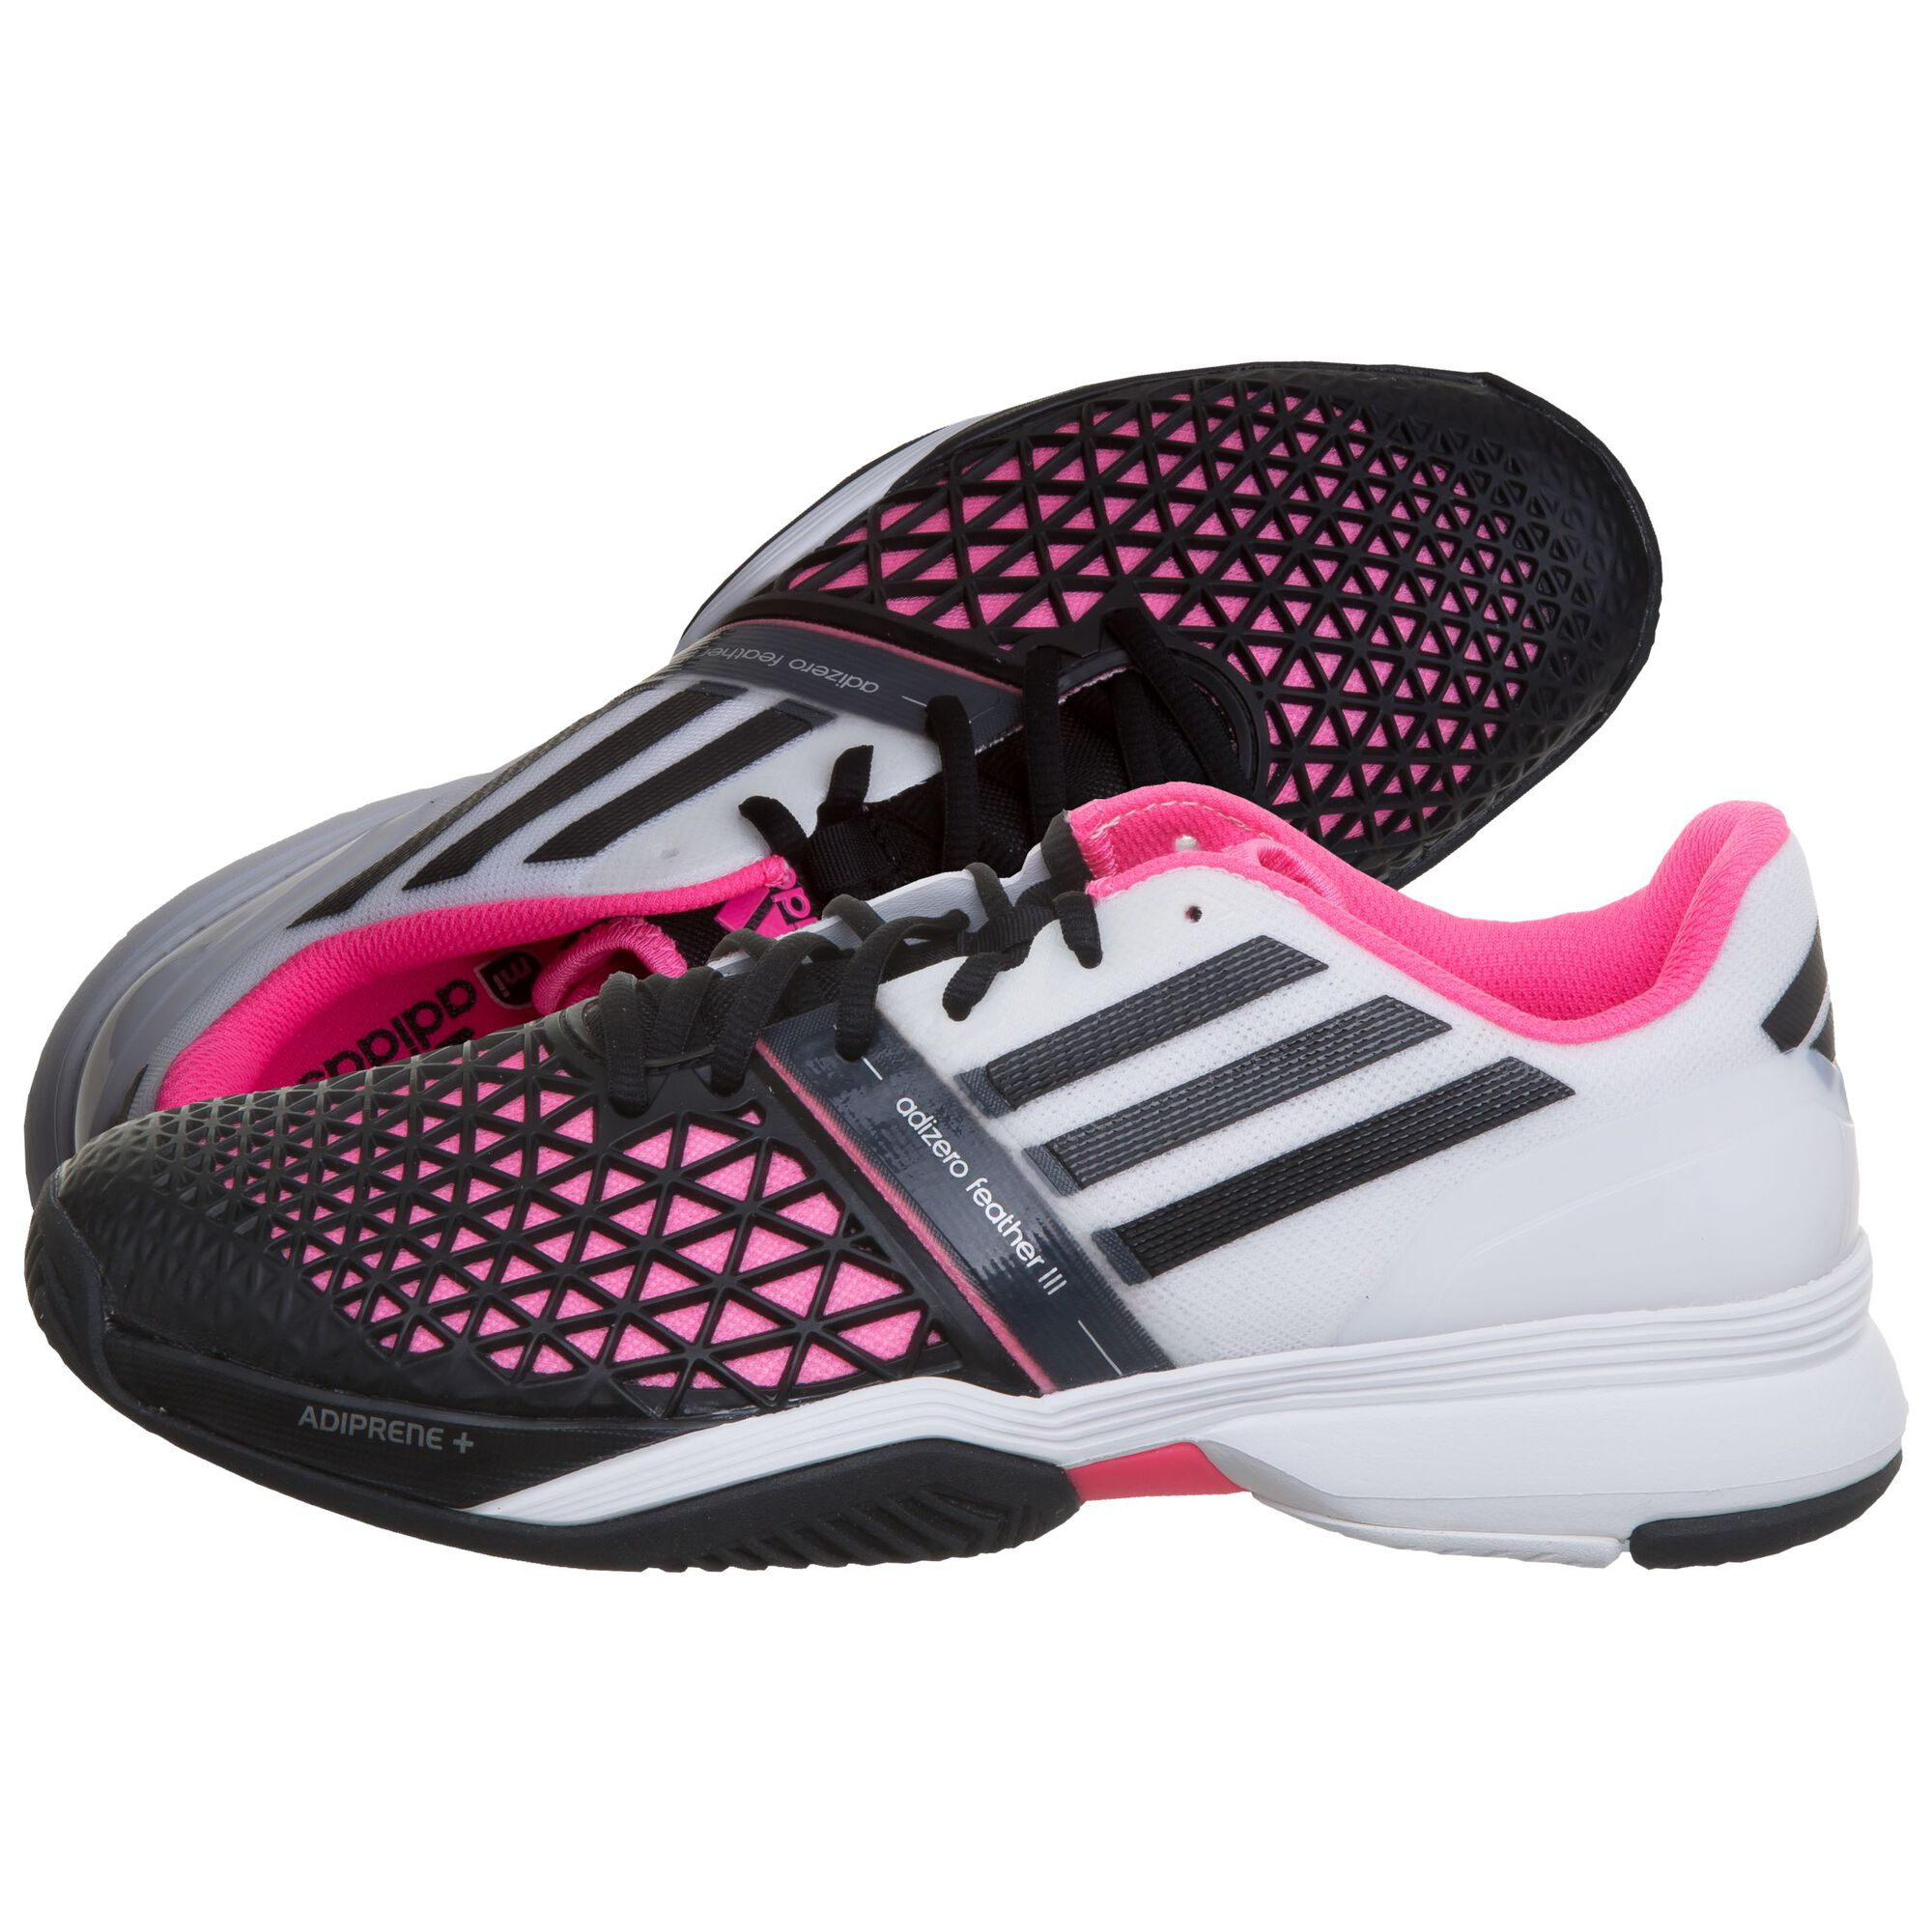 Restringir evaporación Colonos  adidas Climacool Fernando Verdasco Adizero Feather III Zapatilla Todas Las  Superficies Hombres - Negro, Blanco compra online | Tennis-Point